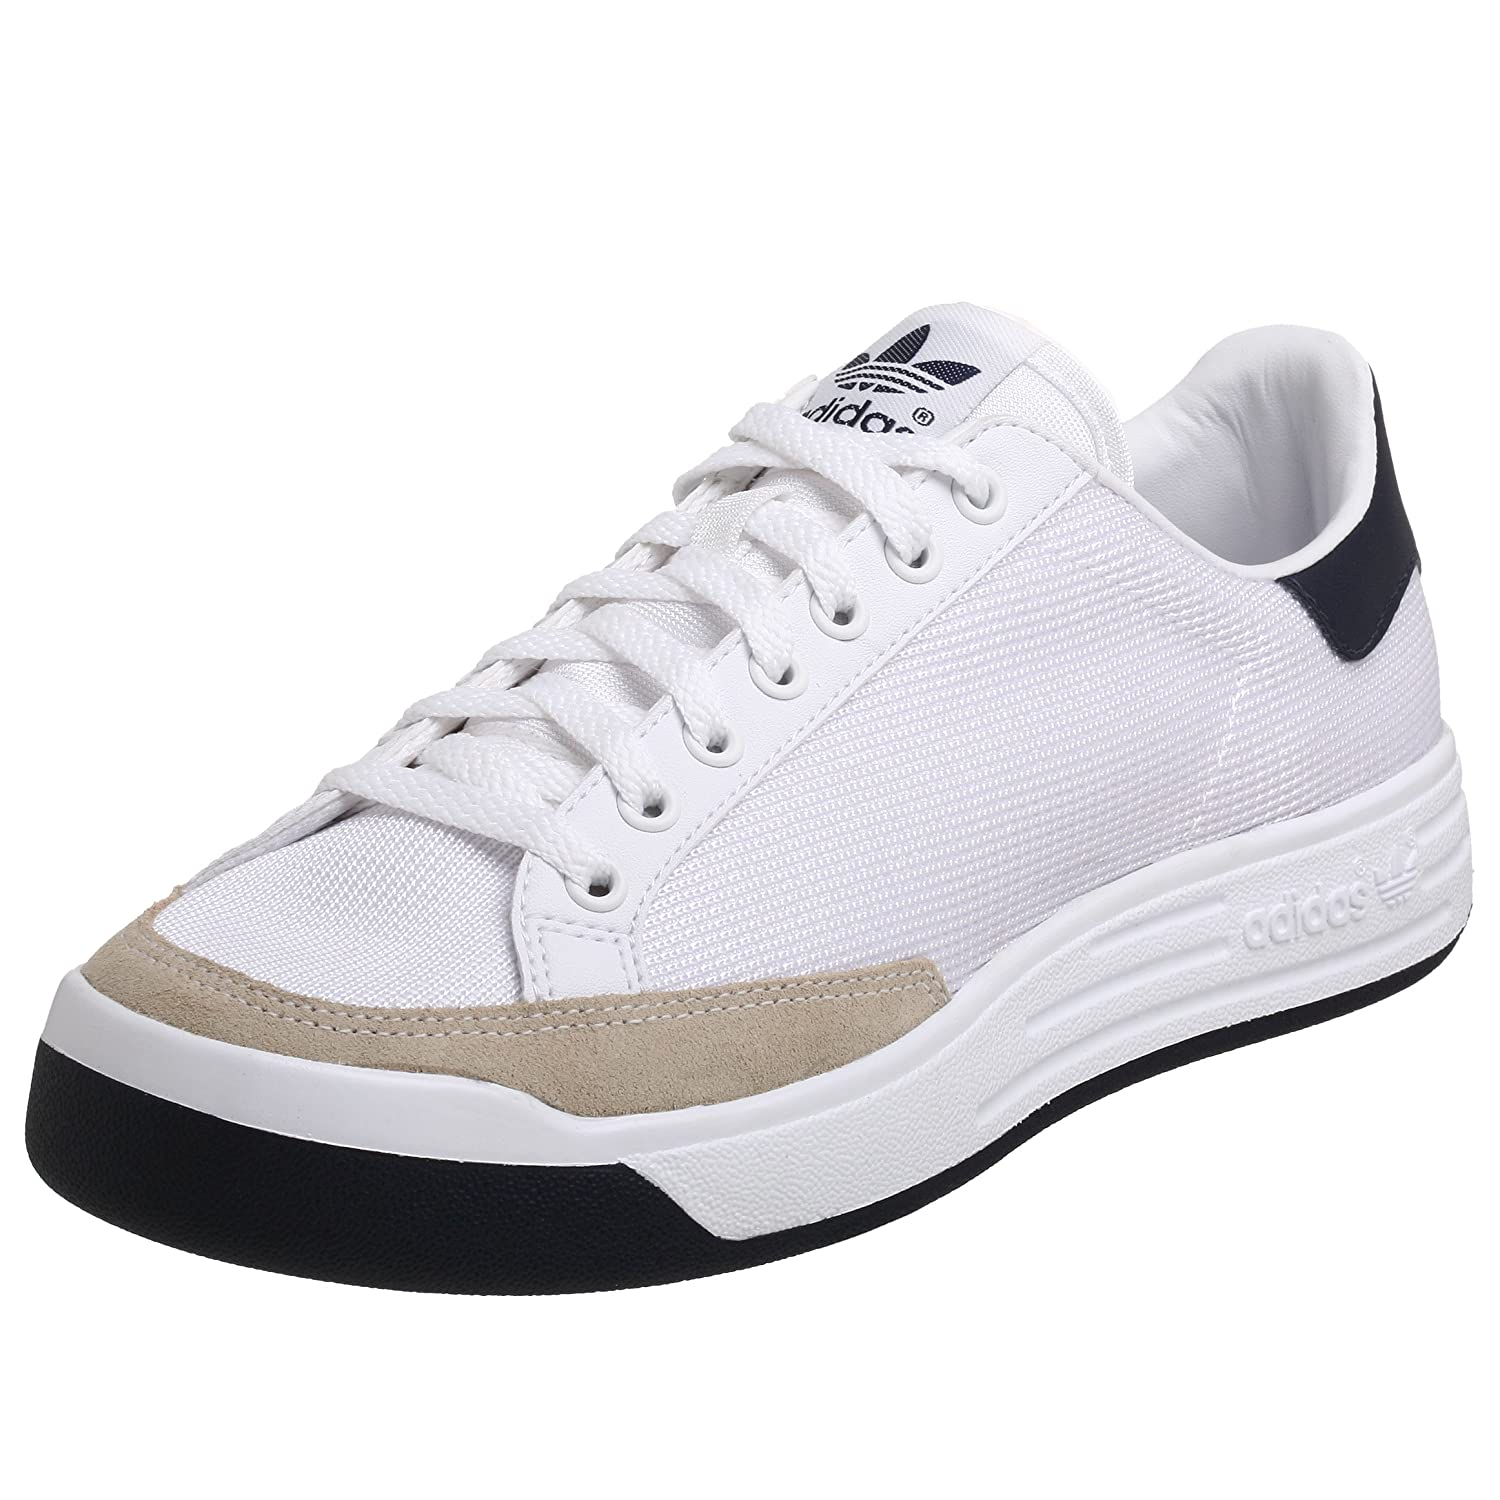 adidas Originals Men's Rod Laver Tennis Shoe, White/New Navy, 7.5 M